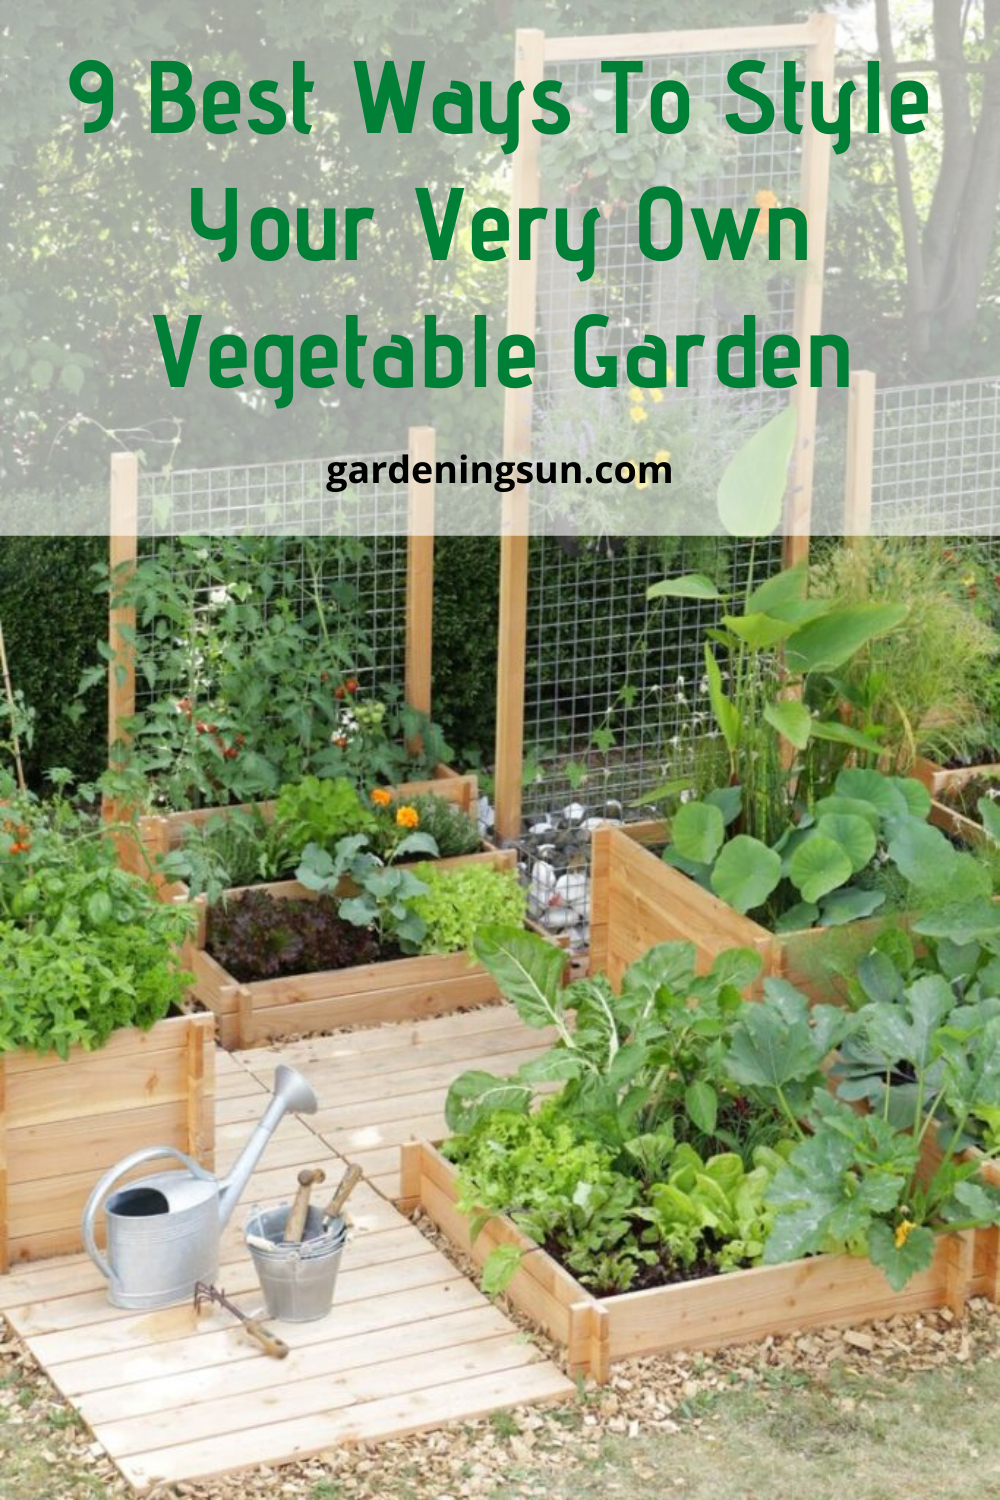 9 best ways to style your very own vegetable garden in on favorite beautiful garden design ideas for enhance your yard tips for gardening id=46759